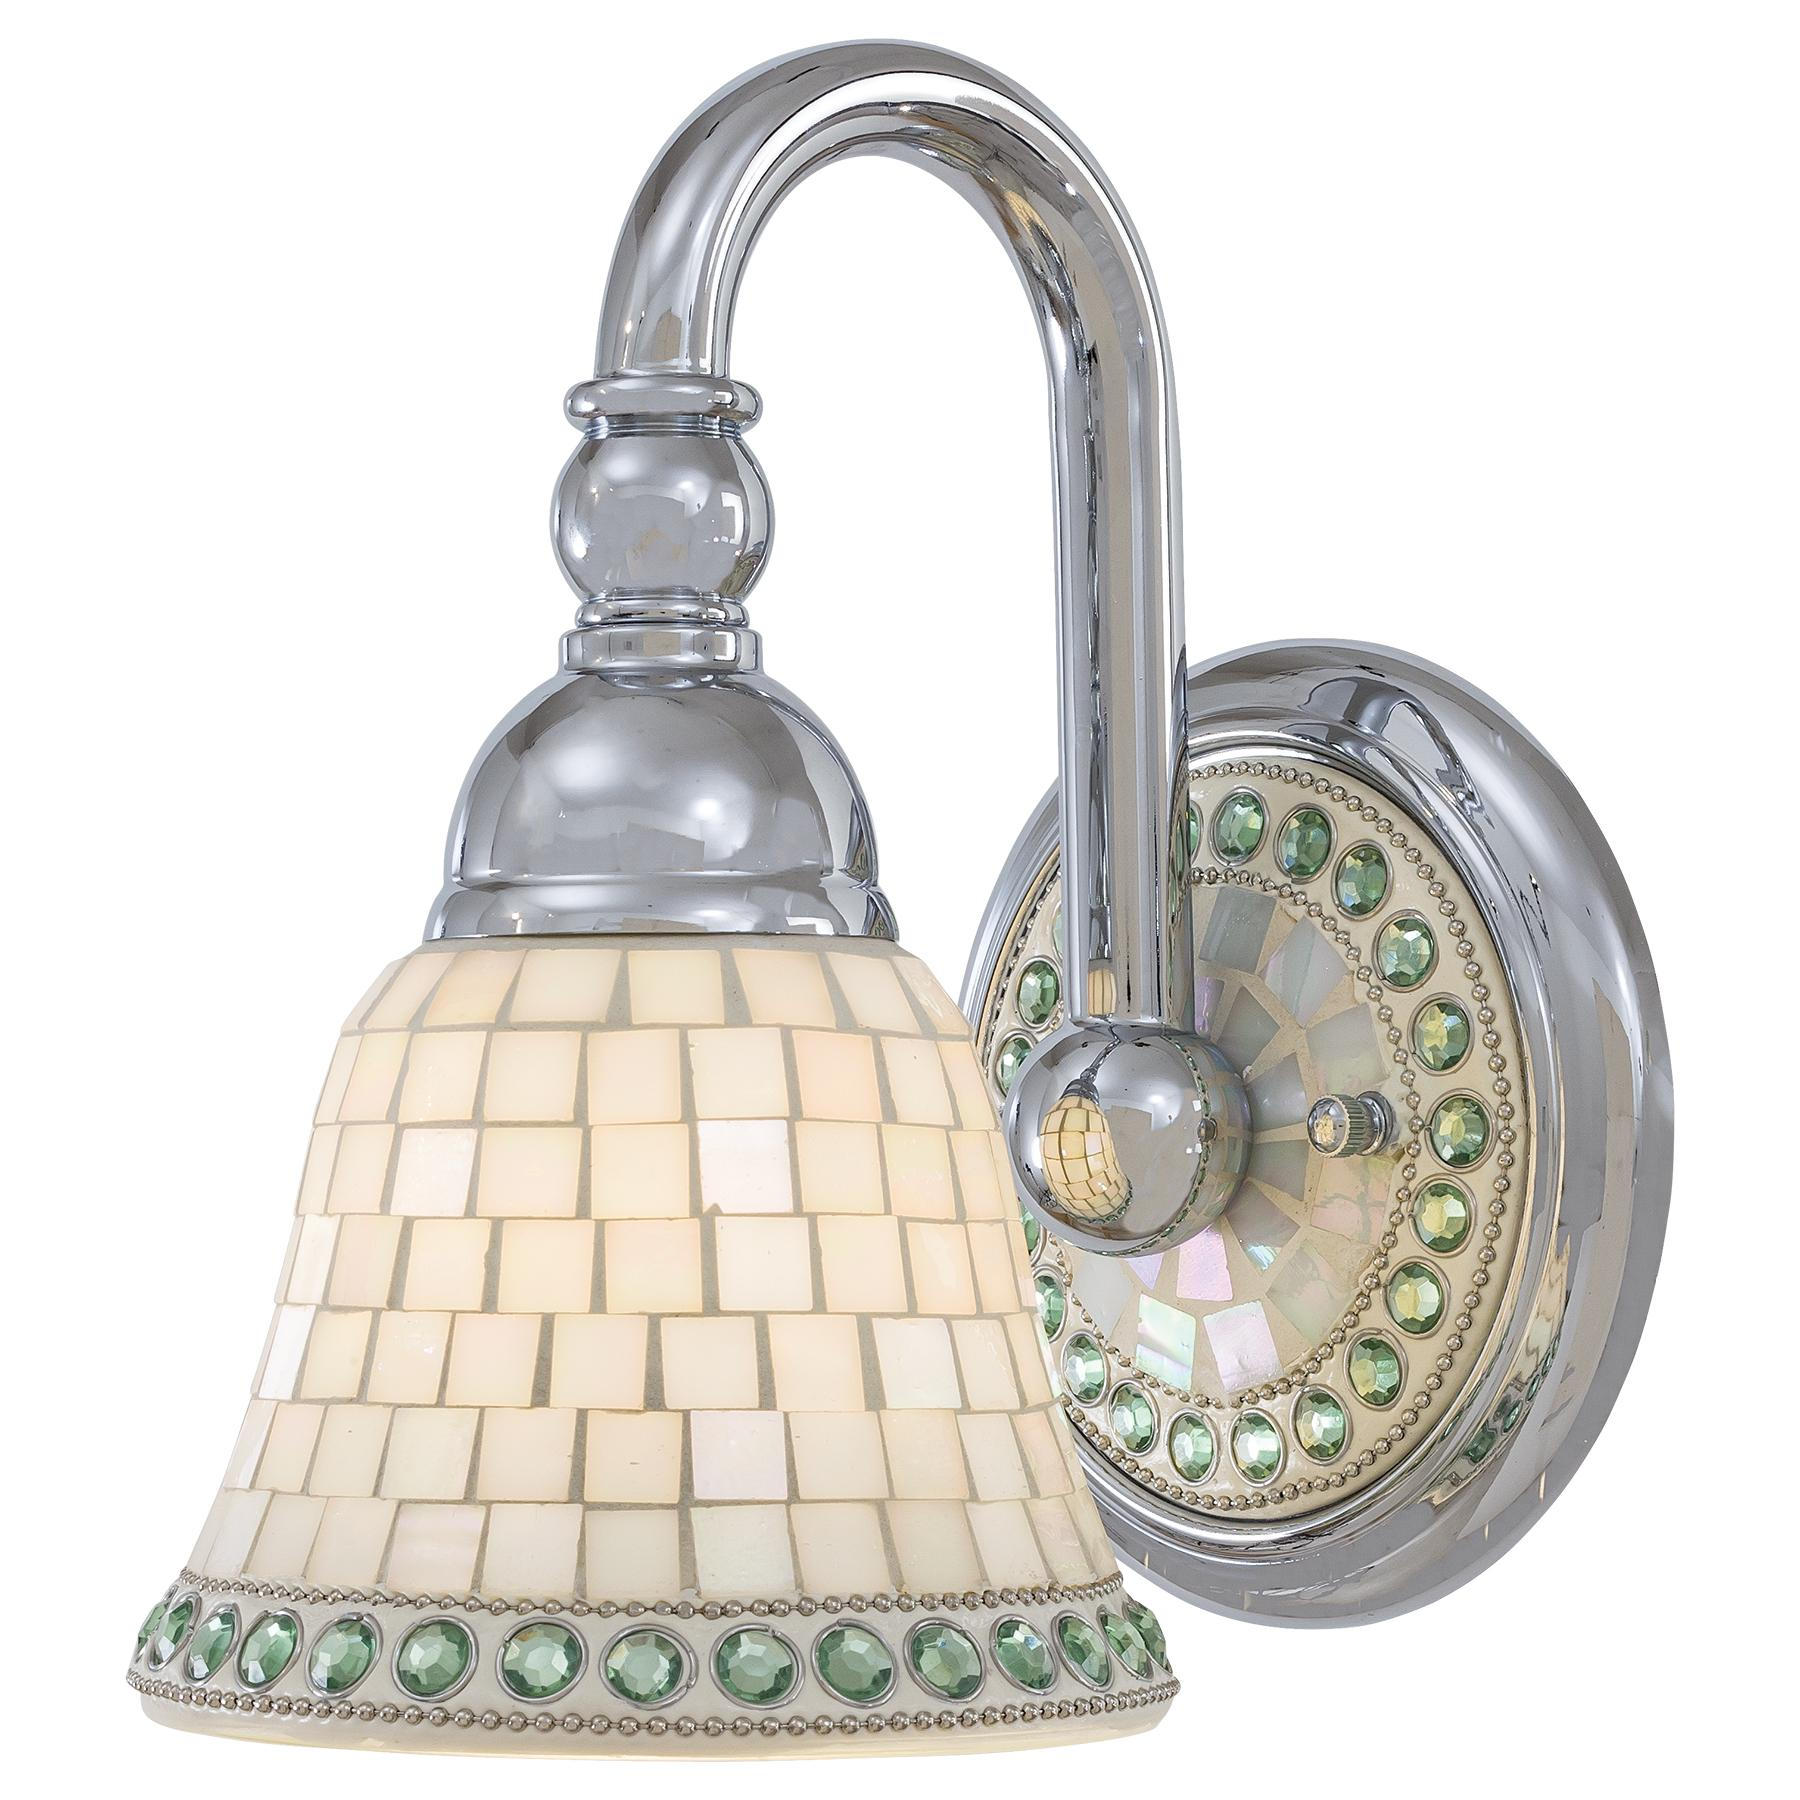 tropical bathroom lighting. Going To The Wall MINKA_6051-77 Tropical Bathroom Lighting S